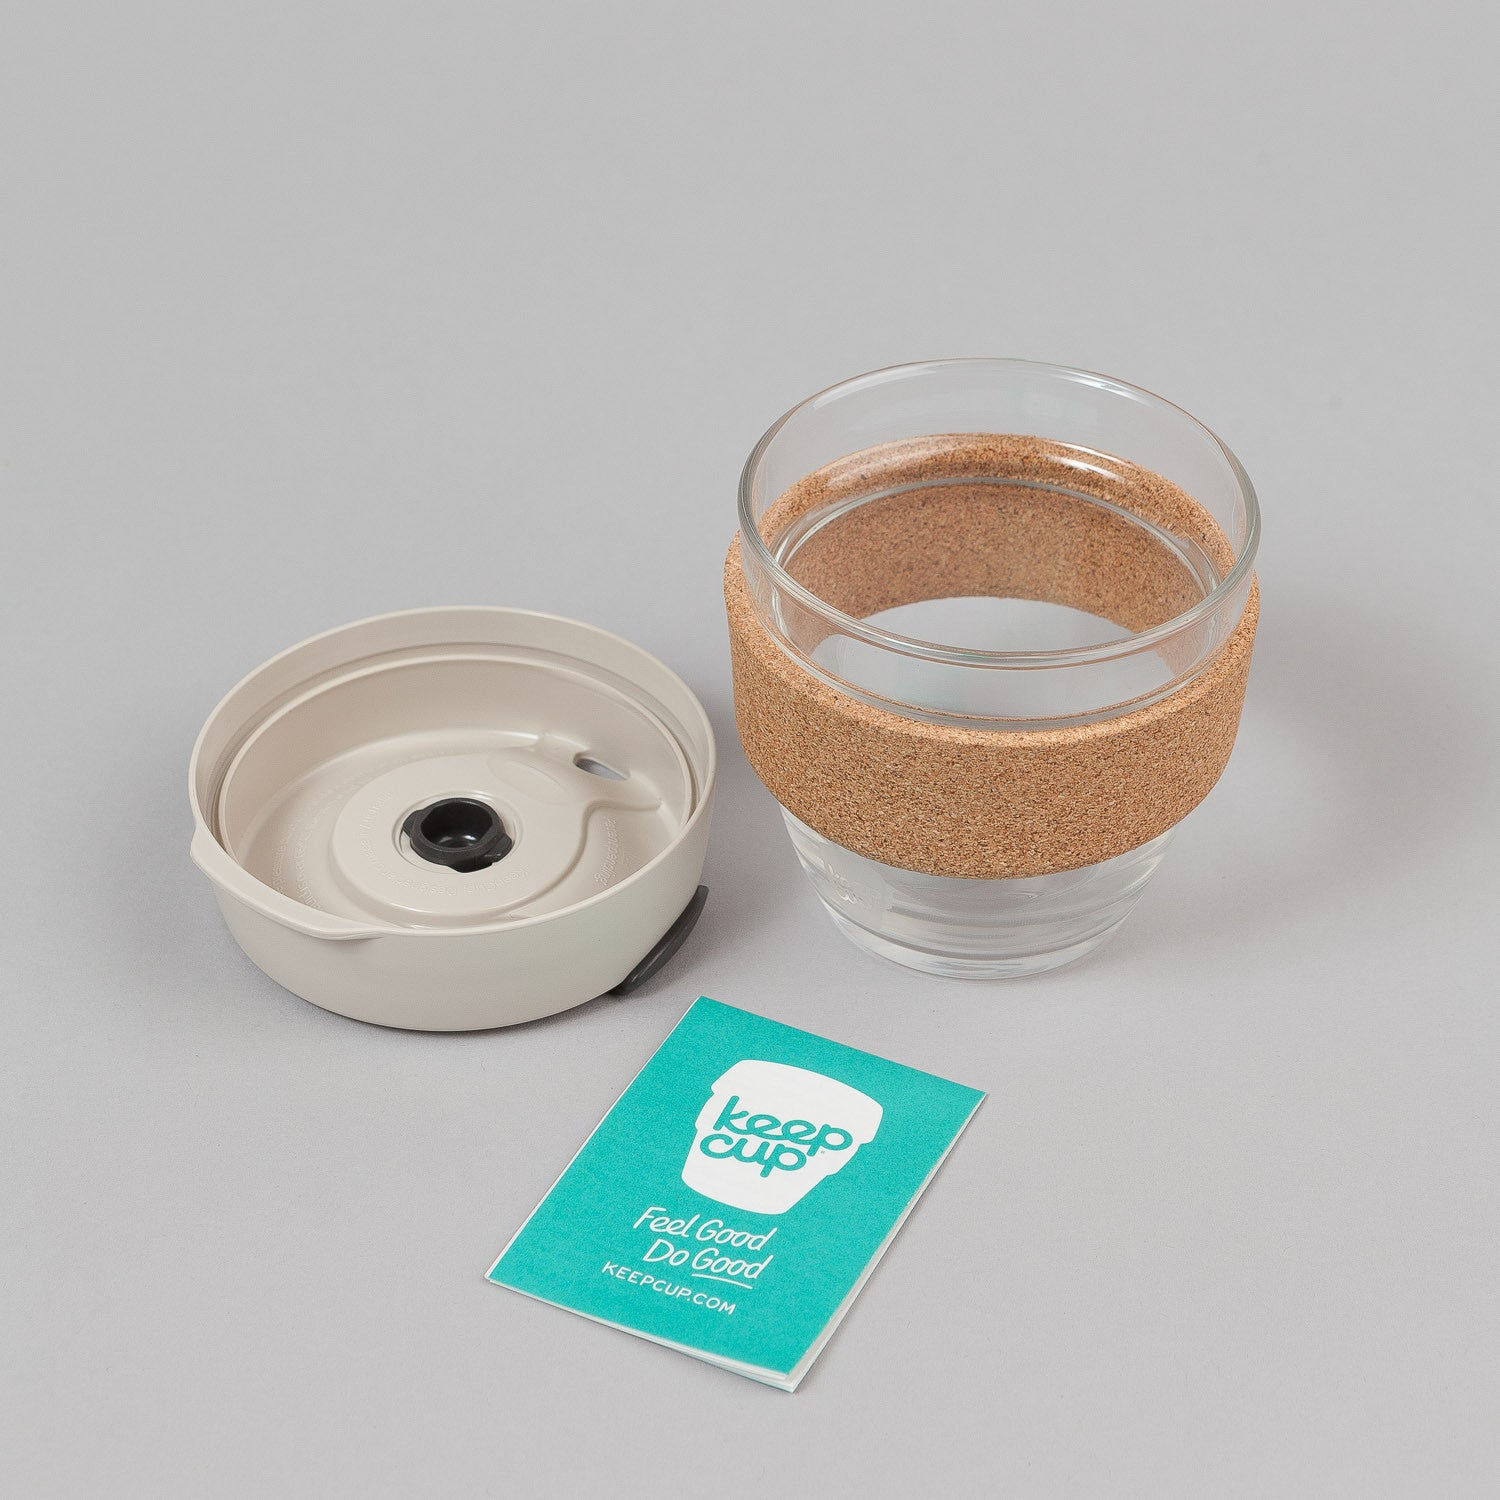 KeepCup Filter 8oz Small Glass Coffee Cup - Latte / Cork